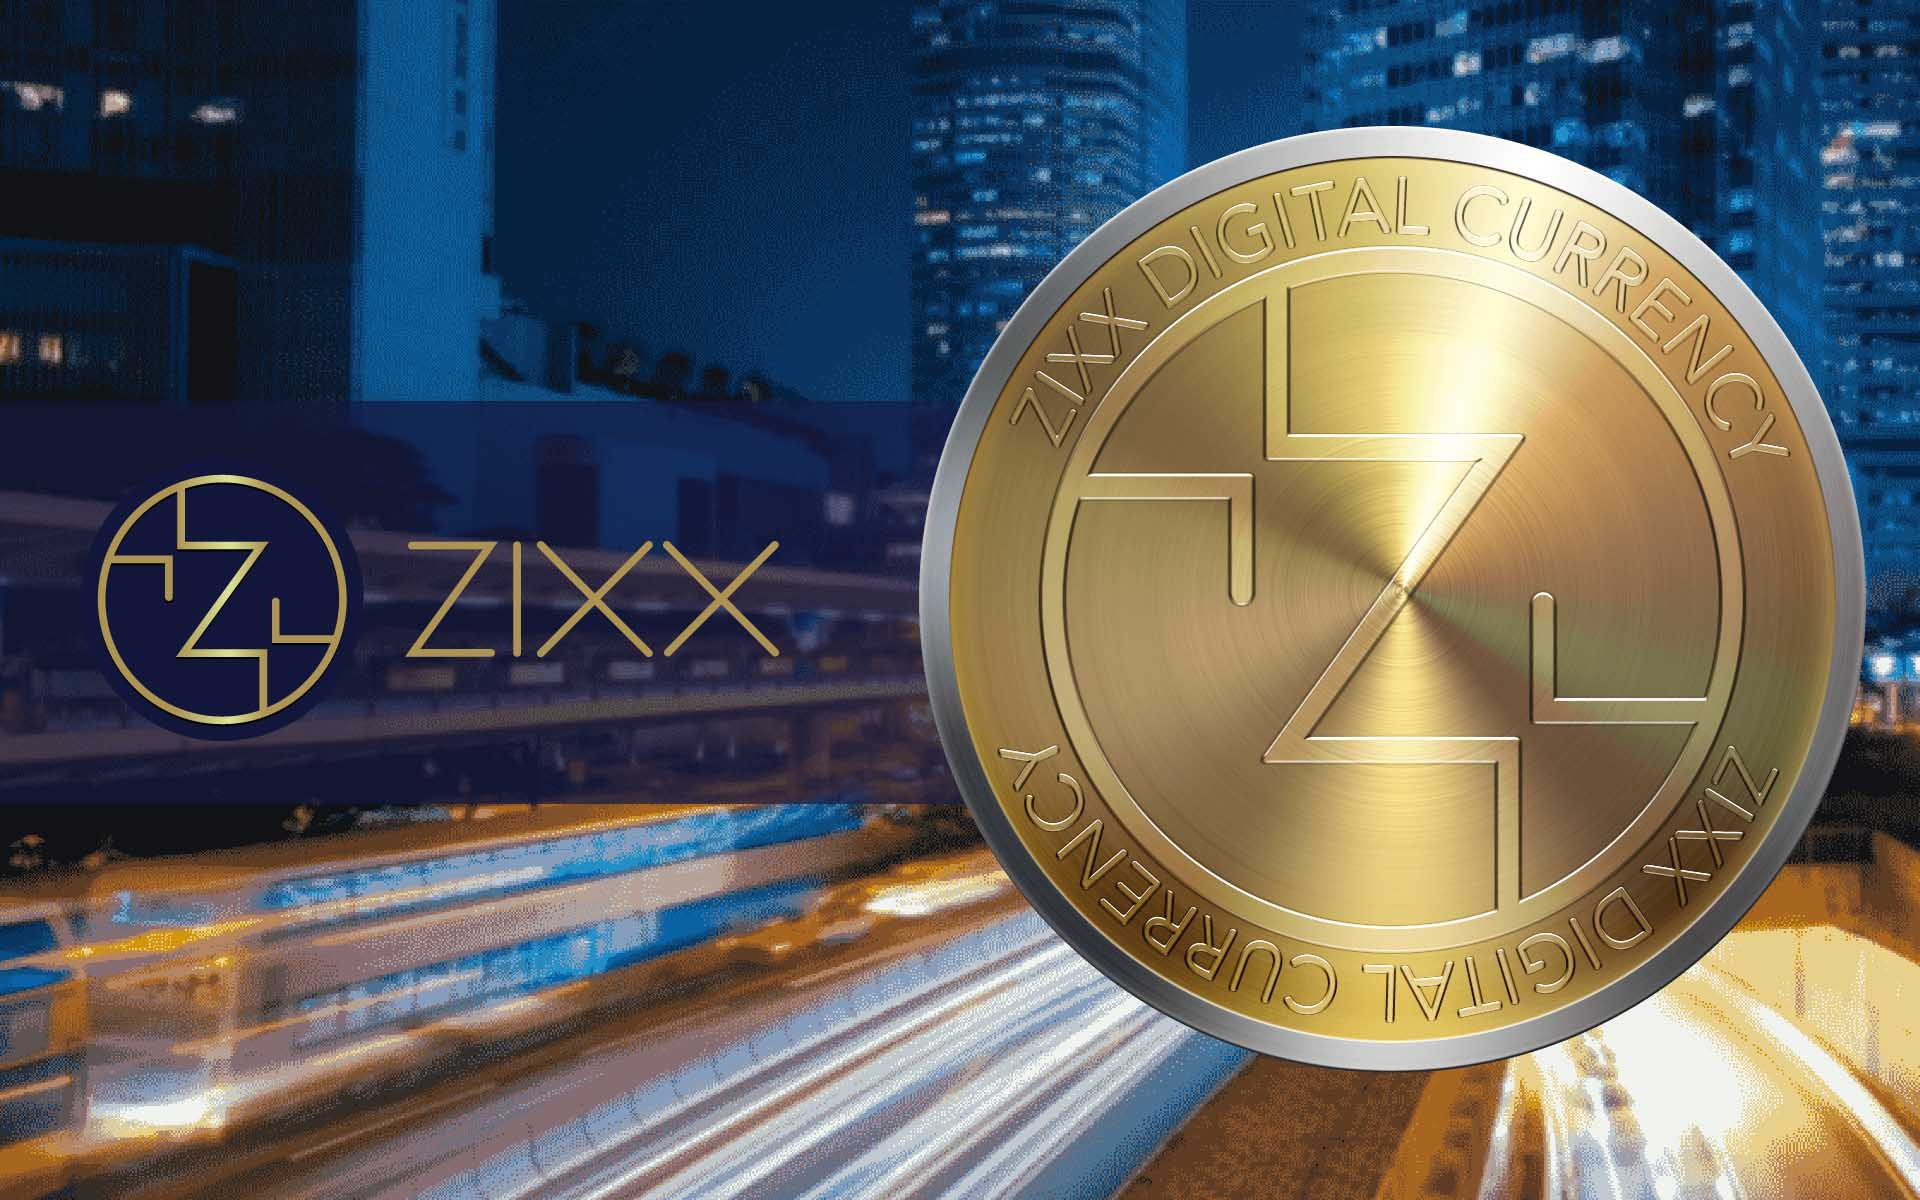 ZIXX Cryptocurrency Is Now Trading